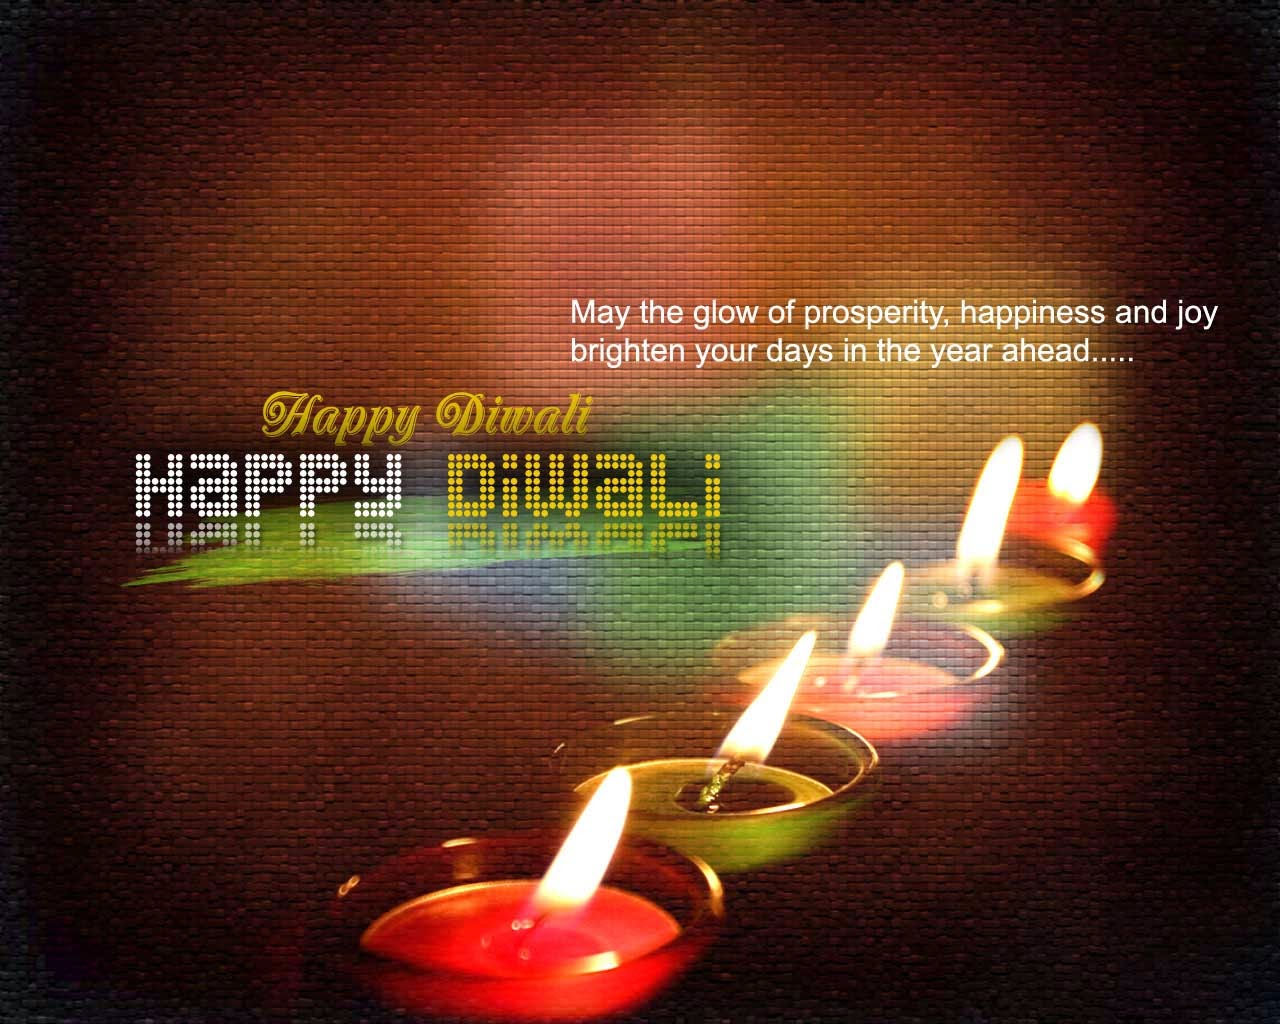 Wallpapers Fun4hdwallpapers Happy Diwali Hd Wallpapers